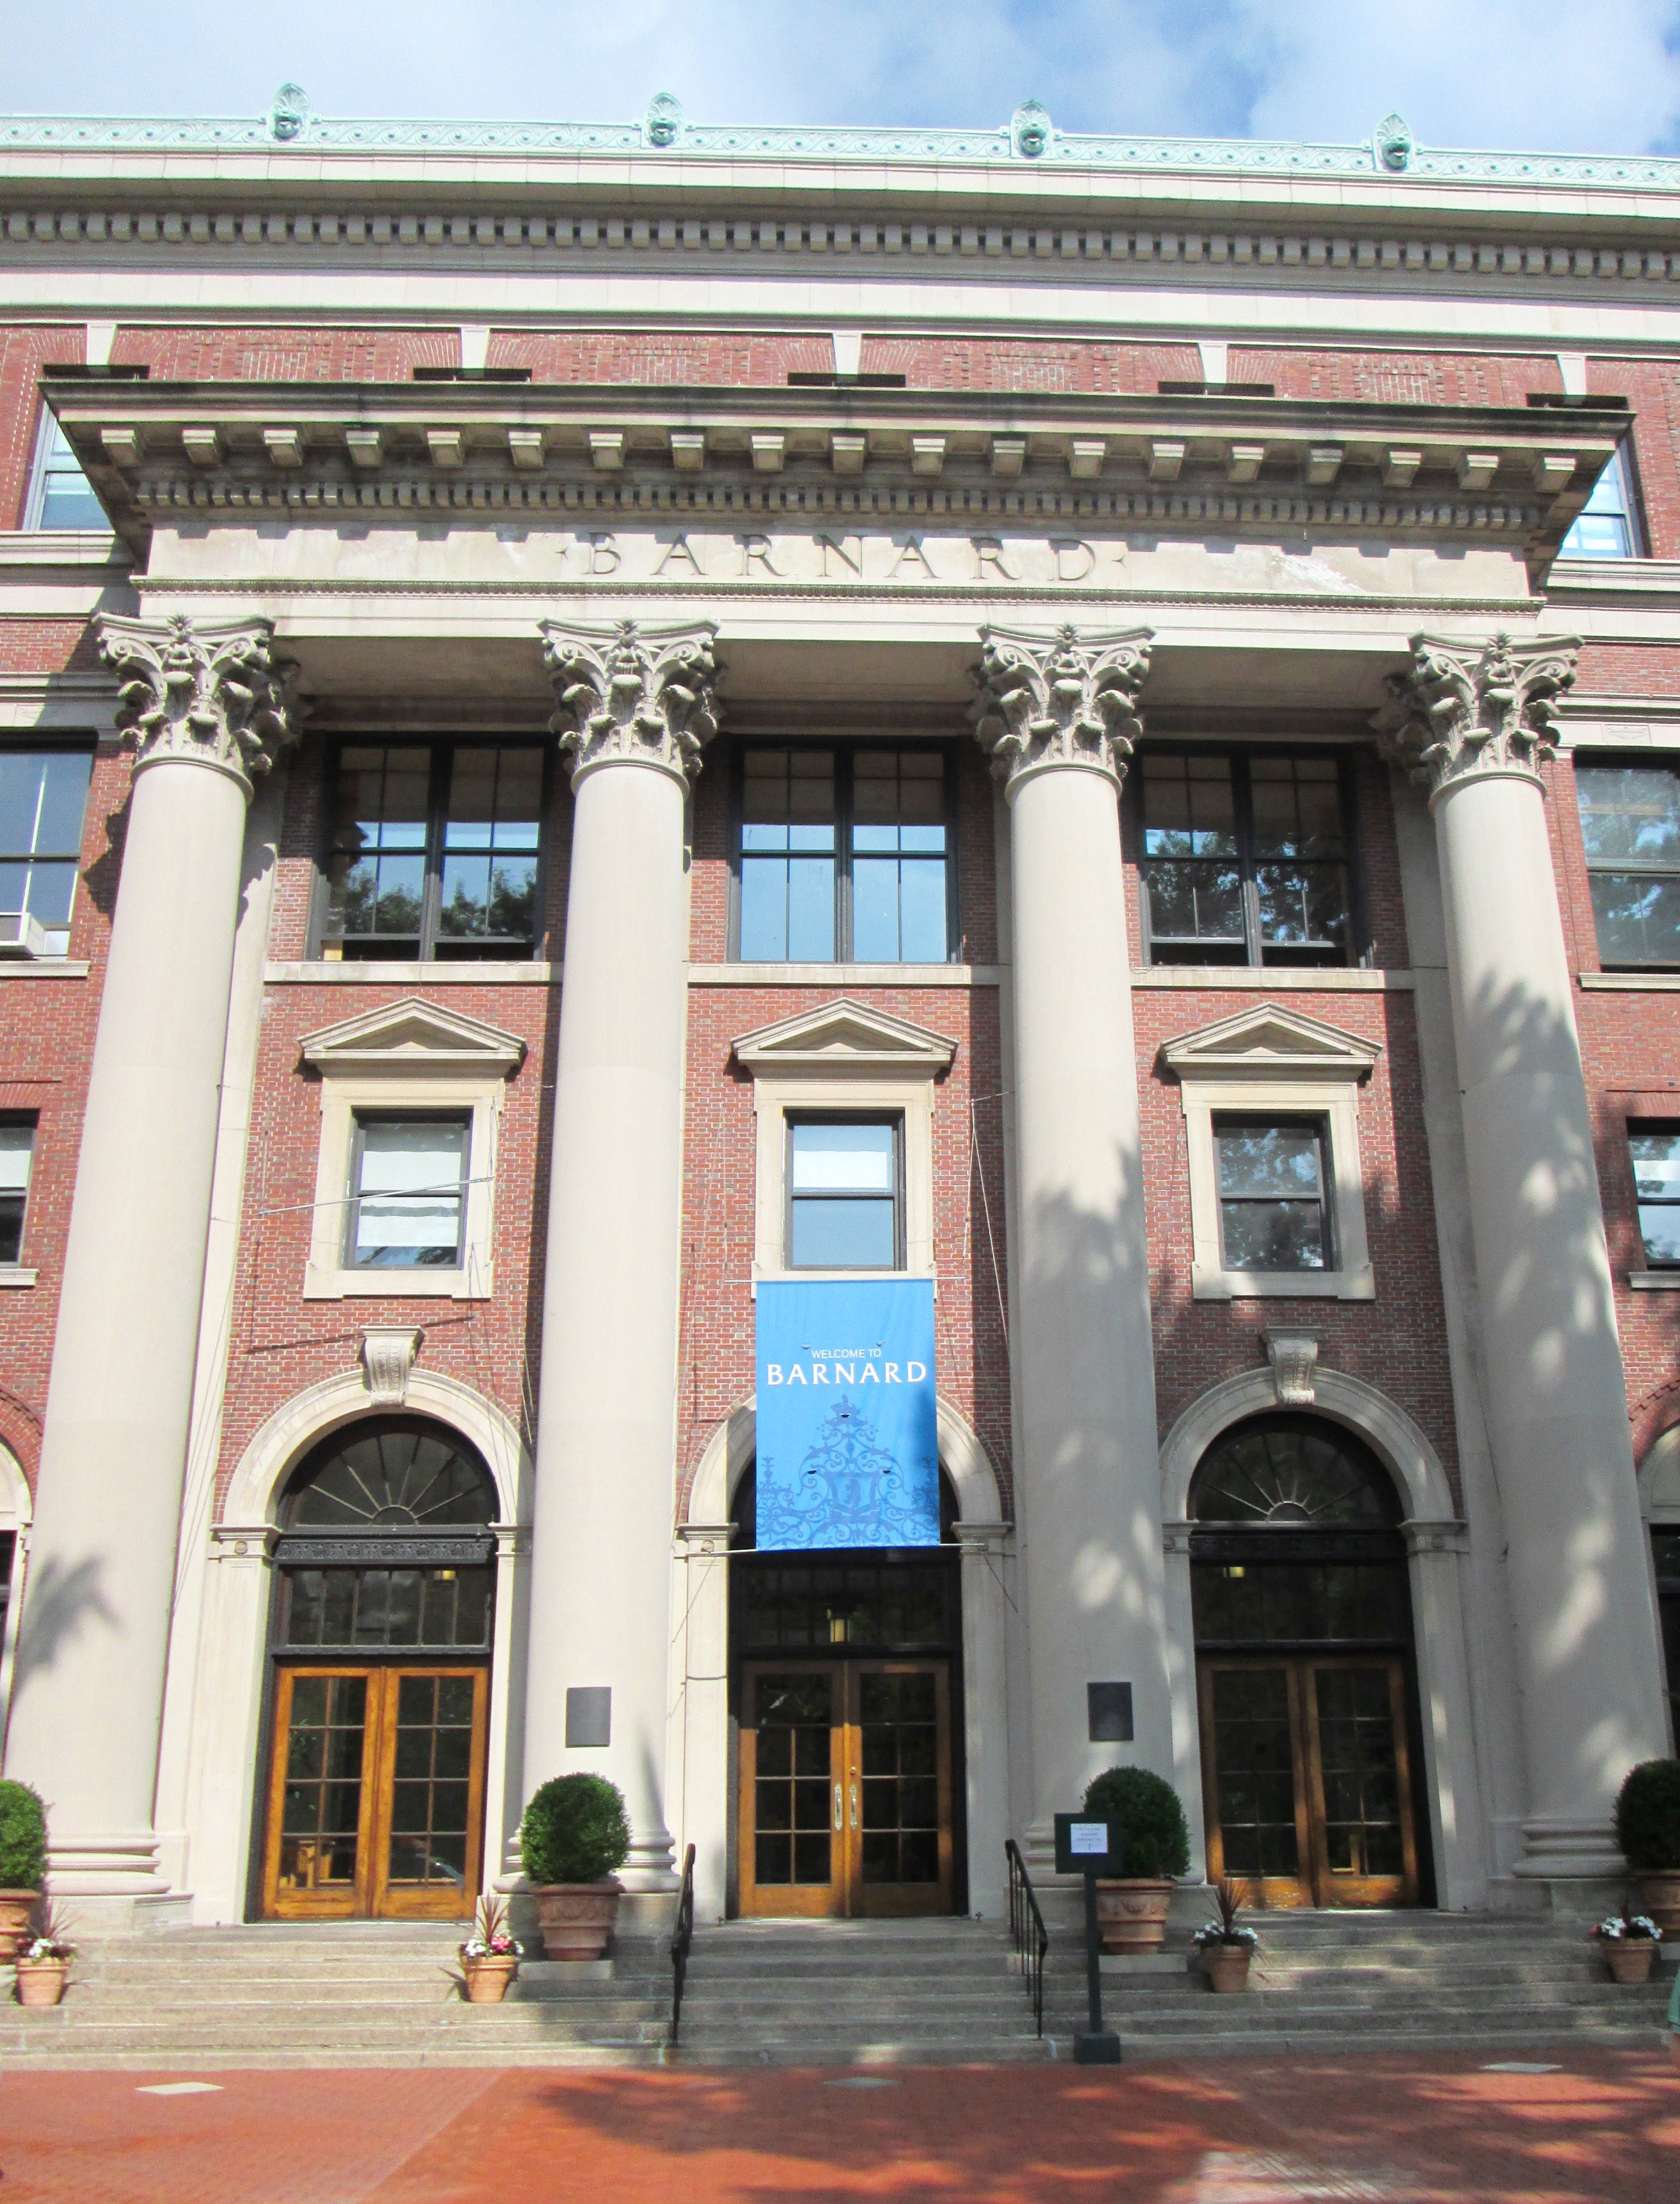 STANDWITHUS CONDEMNS PASSAGE OF DISCRIMINATORY DIVESTMENT REFERENDUM AT BARNARD APRIL 18, 2018